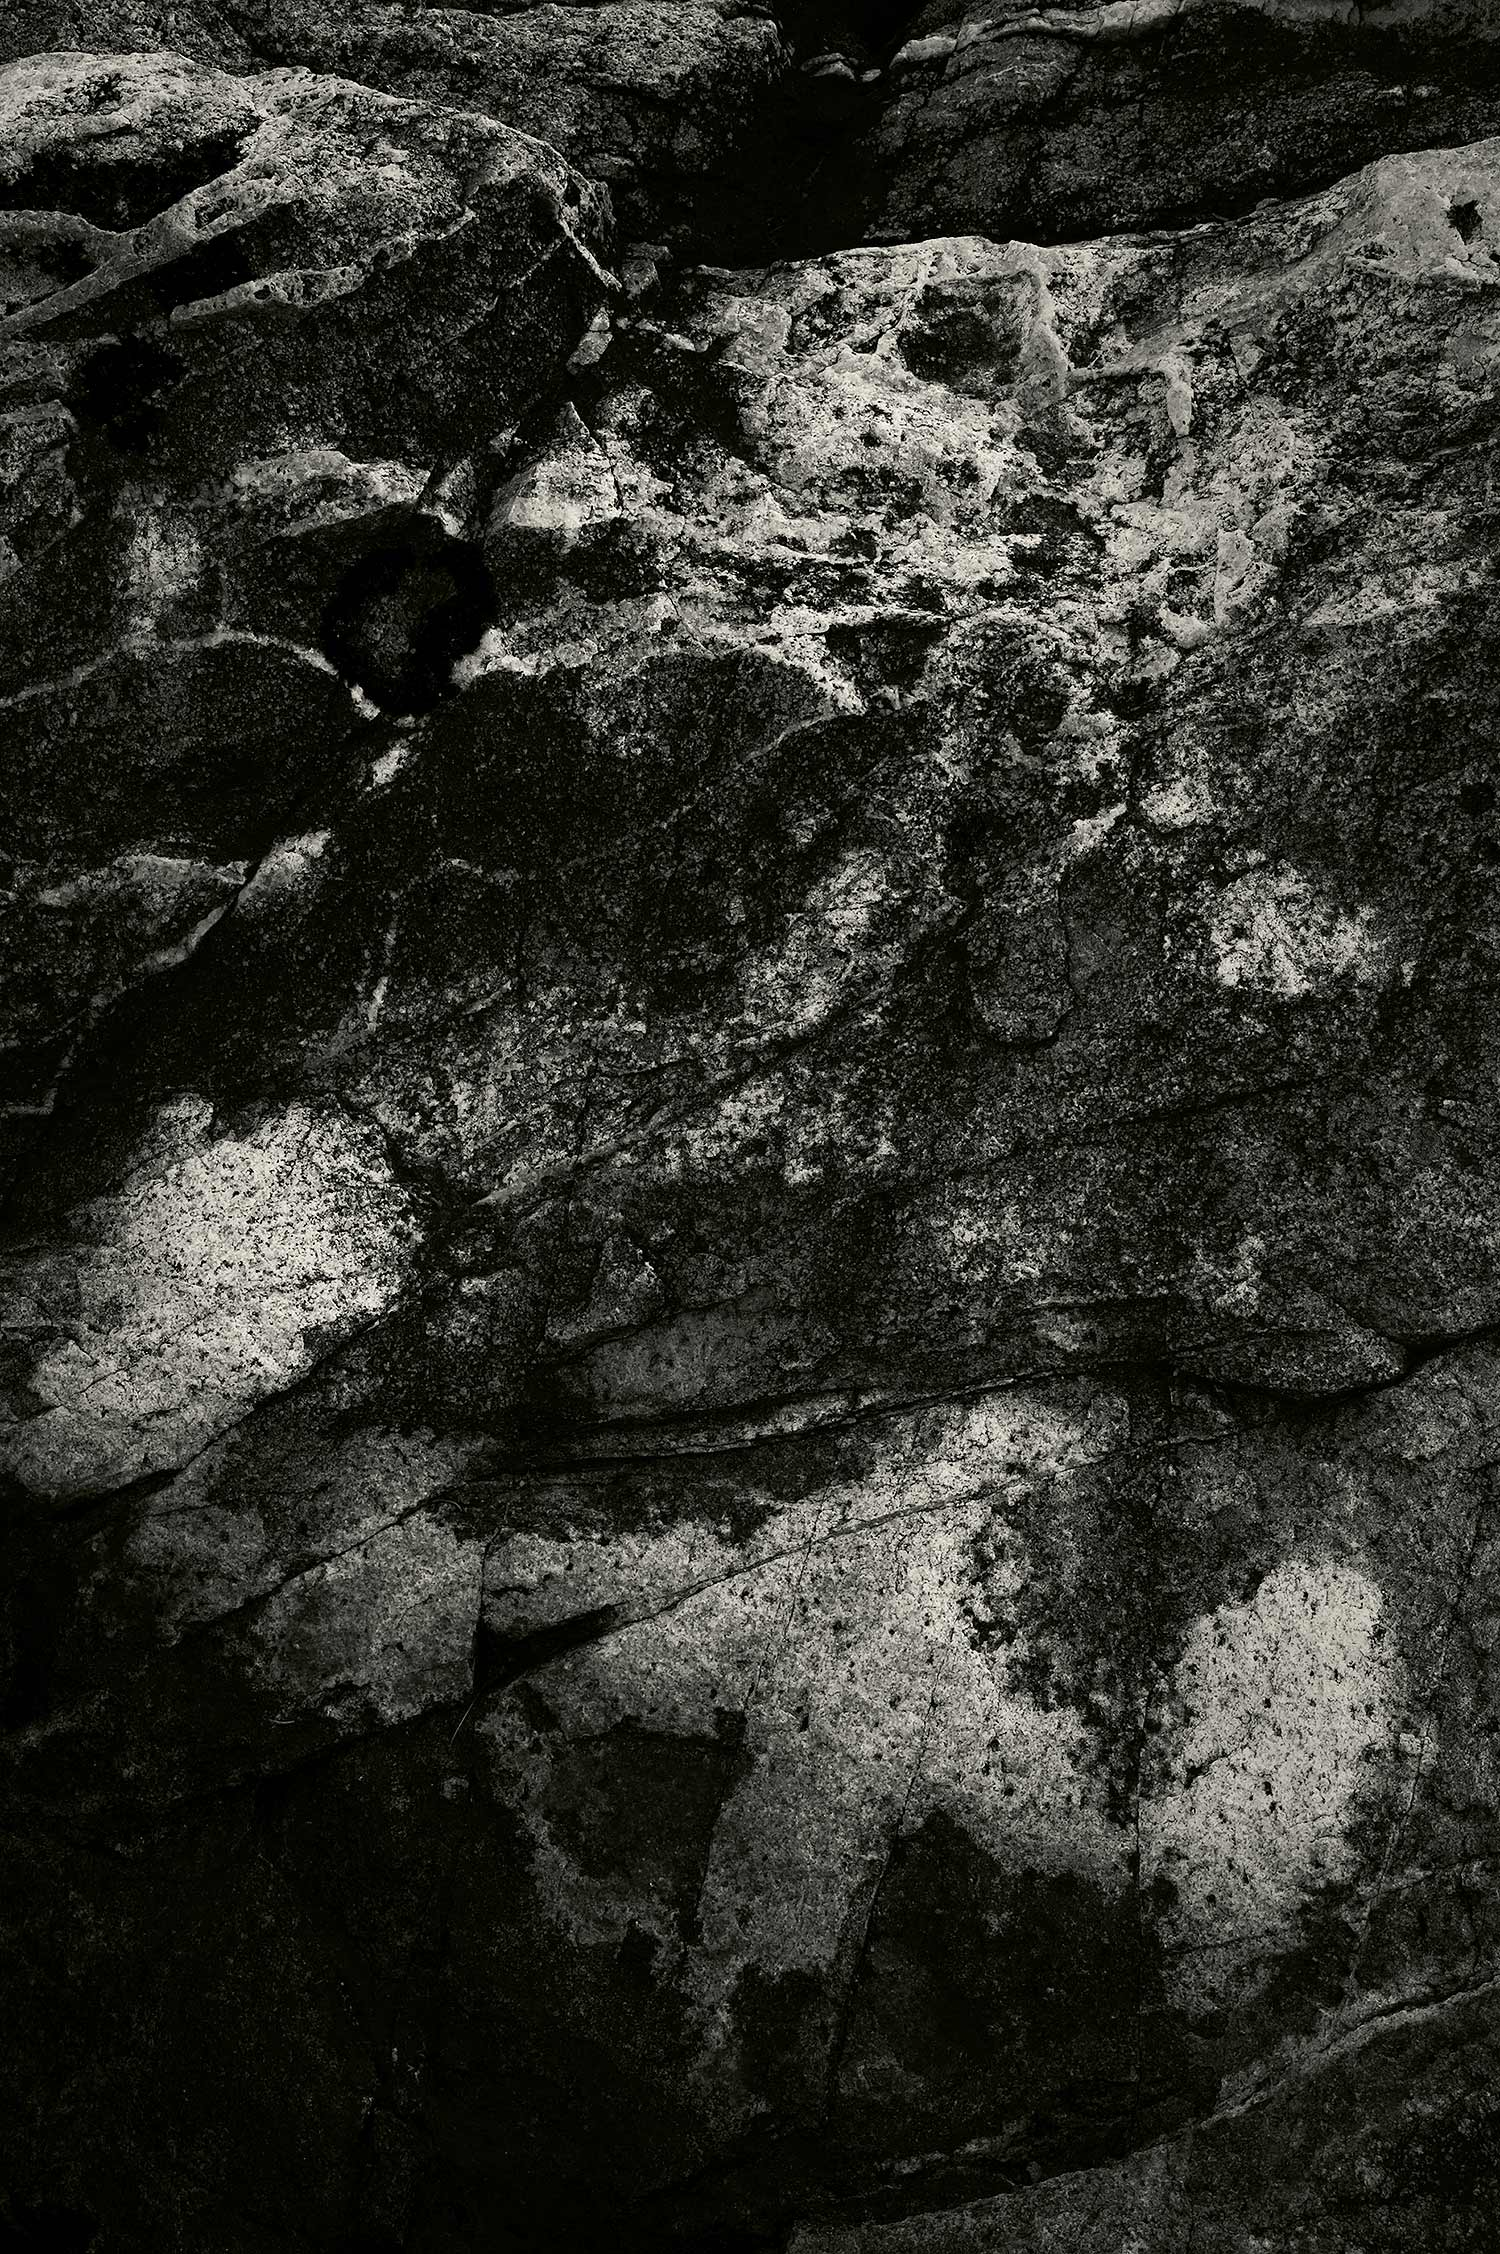 Rock, Acadia National Park, Maine, 2013